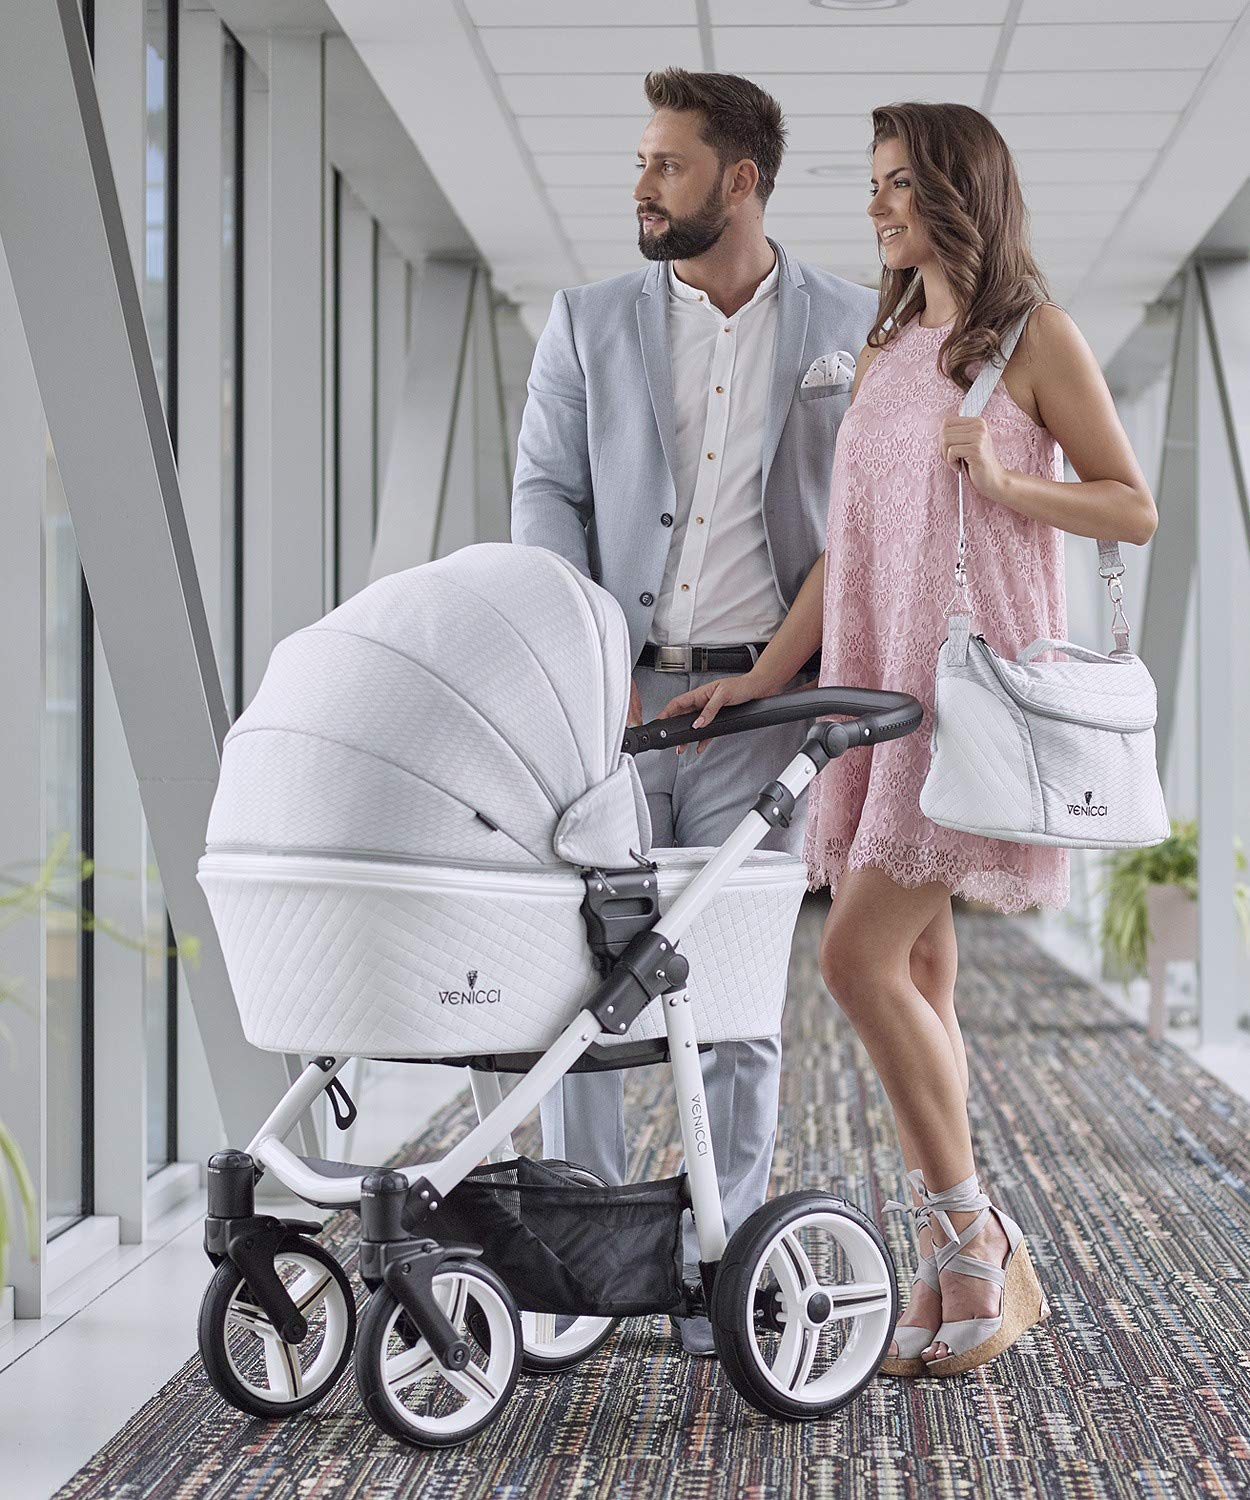 Venicci Pure 3-in-1 Travel System - Stone Grey - with Carrycot + Car Seat + Changing Bag + Apron + Raincover + Mosquito Net + 5-Point Harness and UV 50+ Fabric + Car Seat Adapters + Cup Holder  3 in 1 Travel System with included Group 0+ Car Seat Suitable for your baby from birth until 36 months 5-point harness to enhance the safety of your child 5